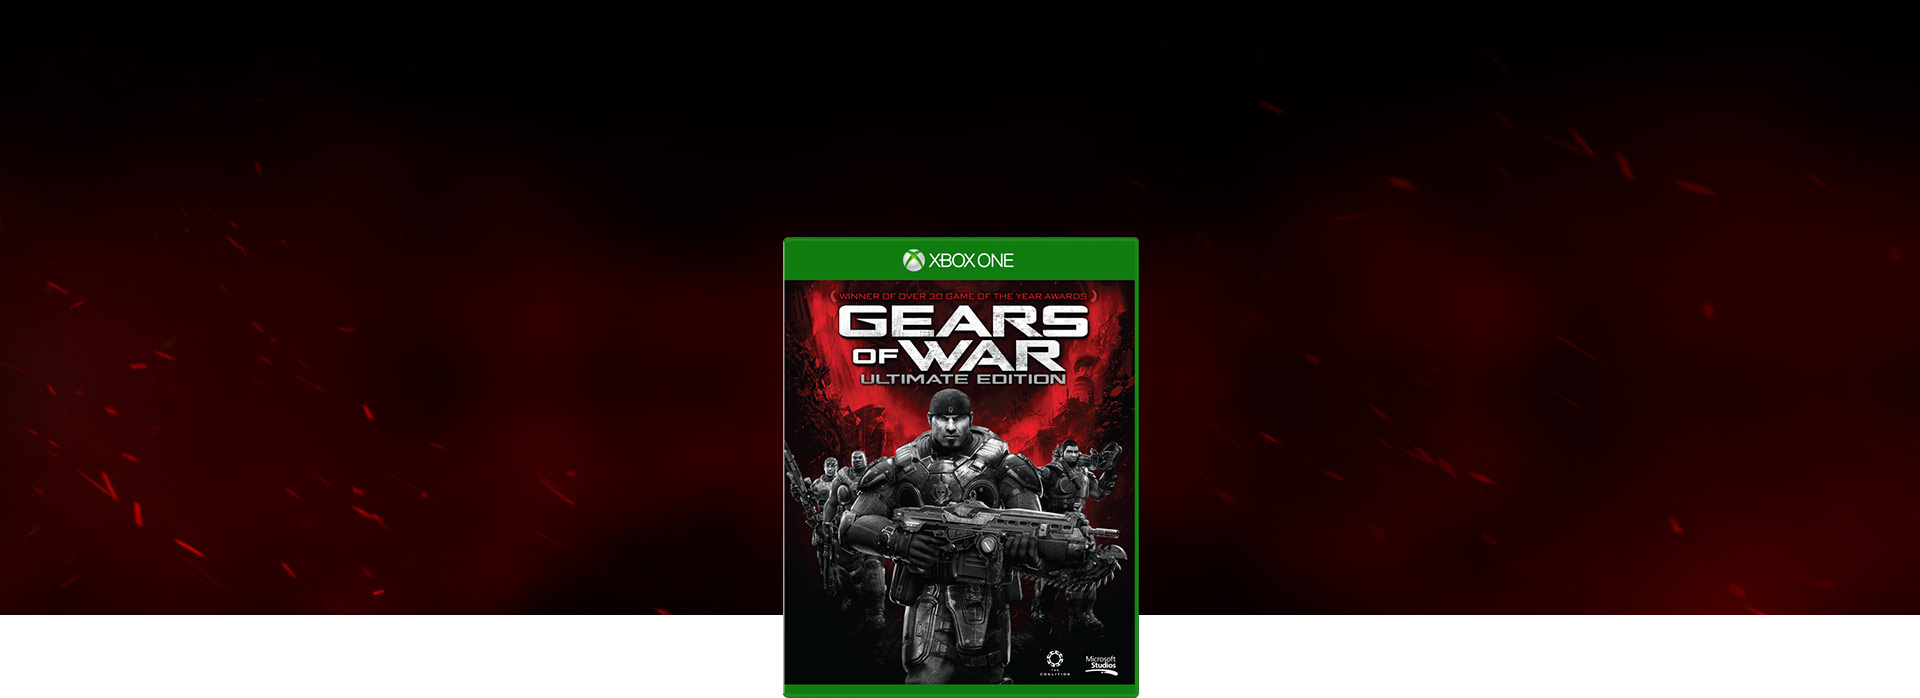 Image de la boîte de Gears of War : édition Ultimate